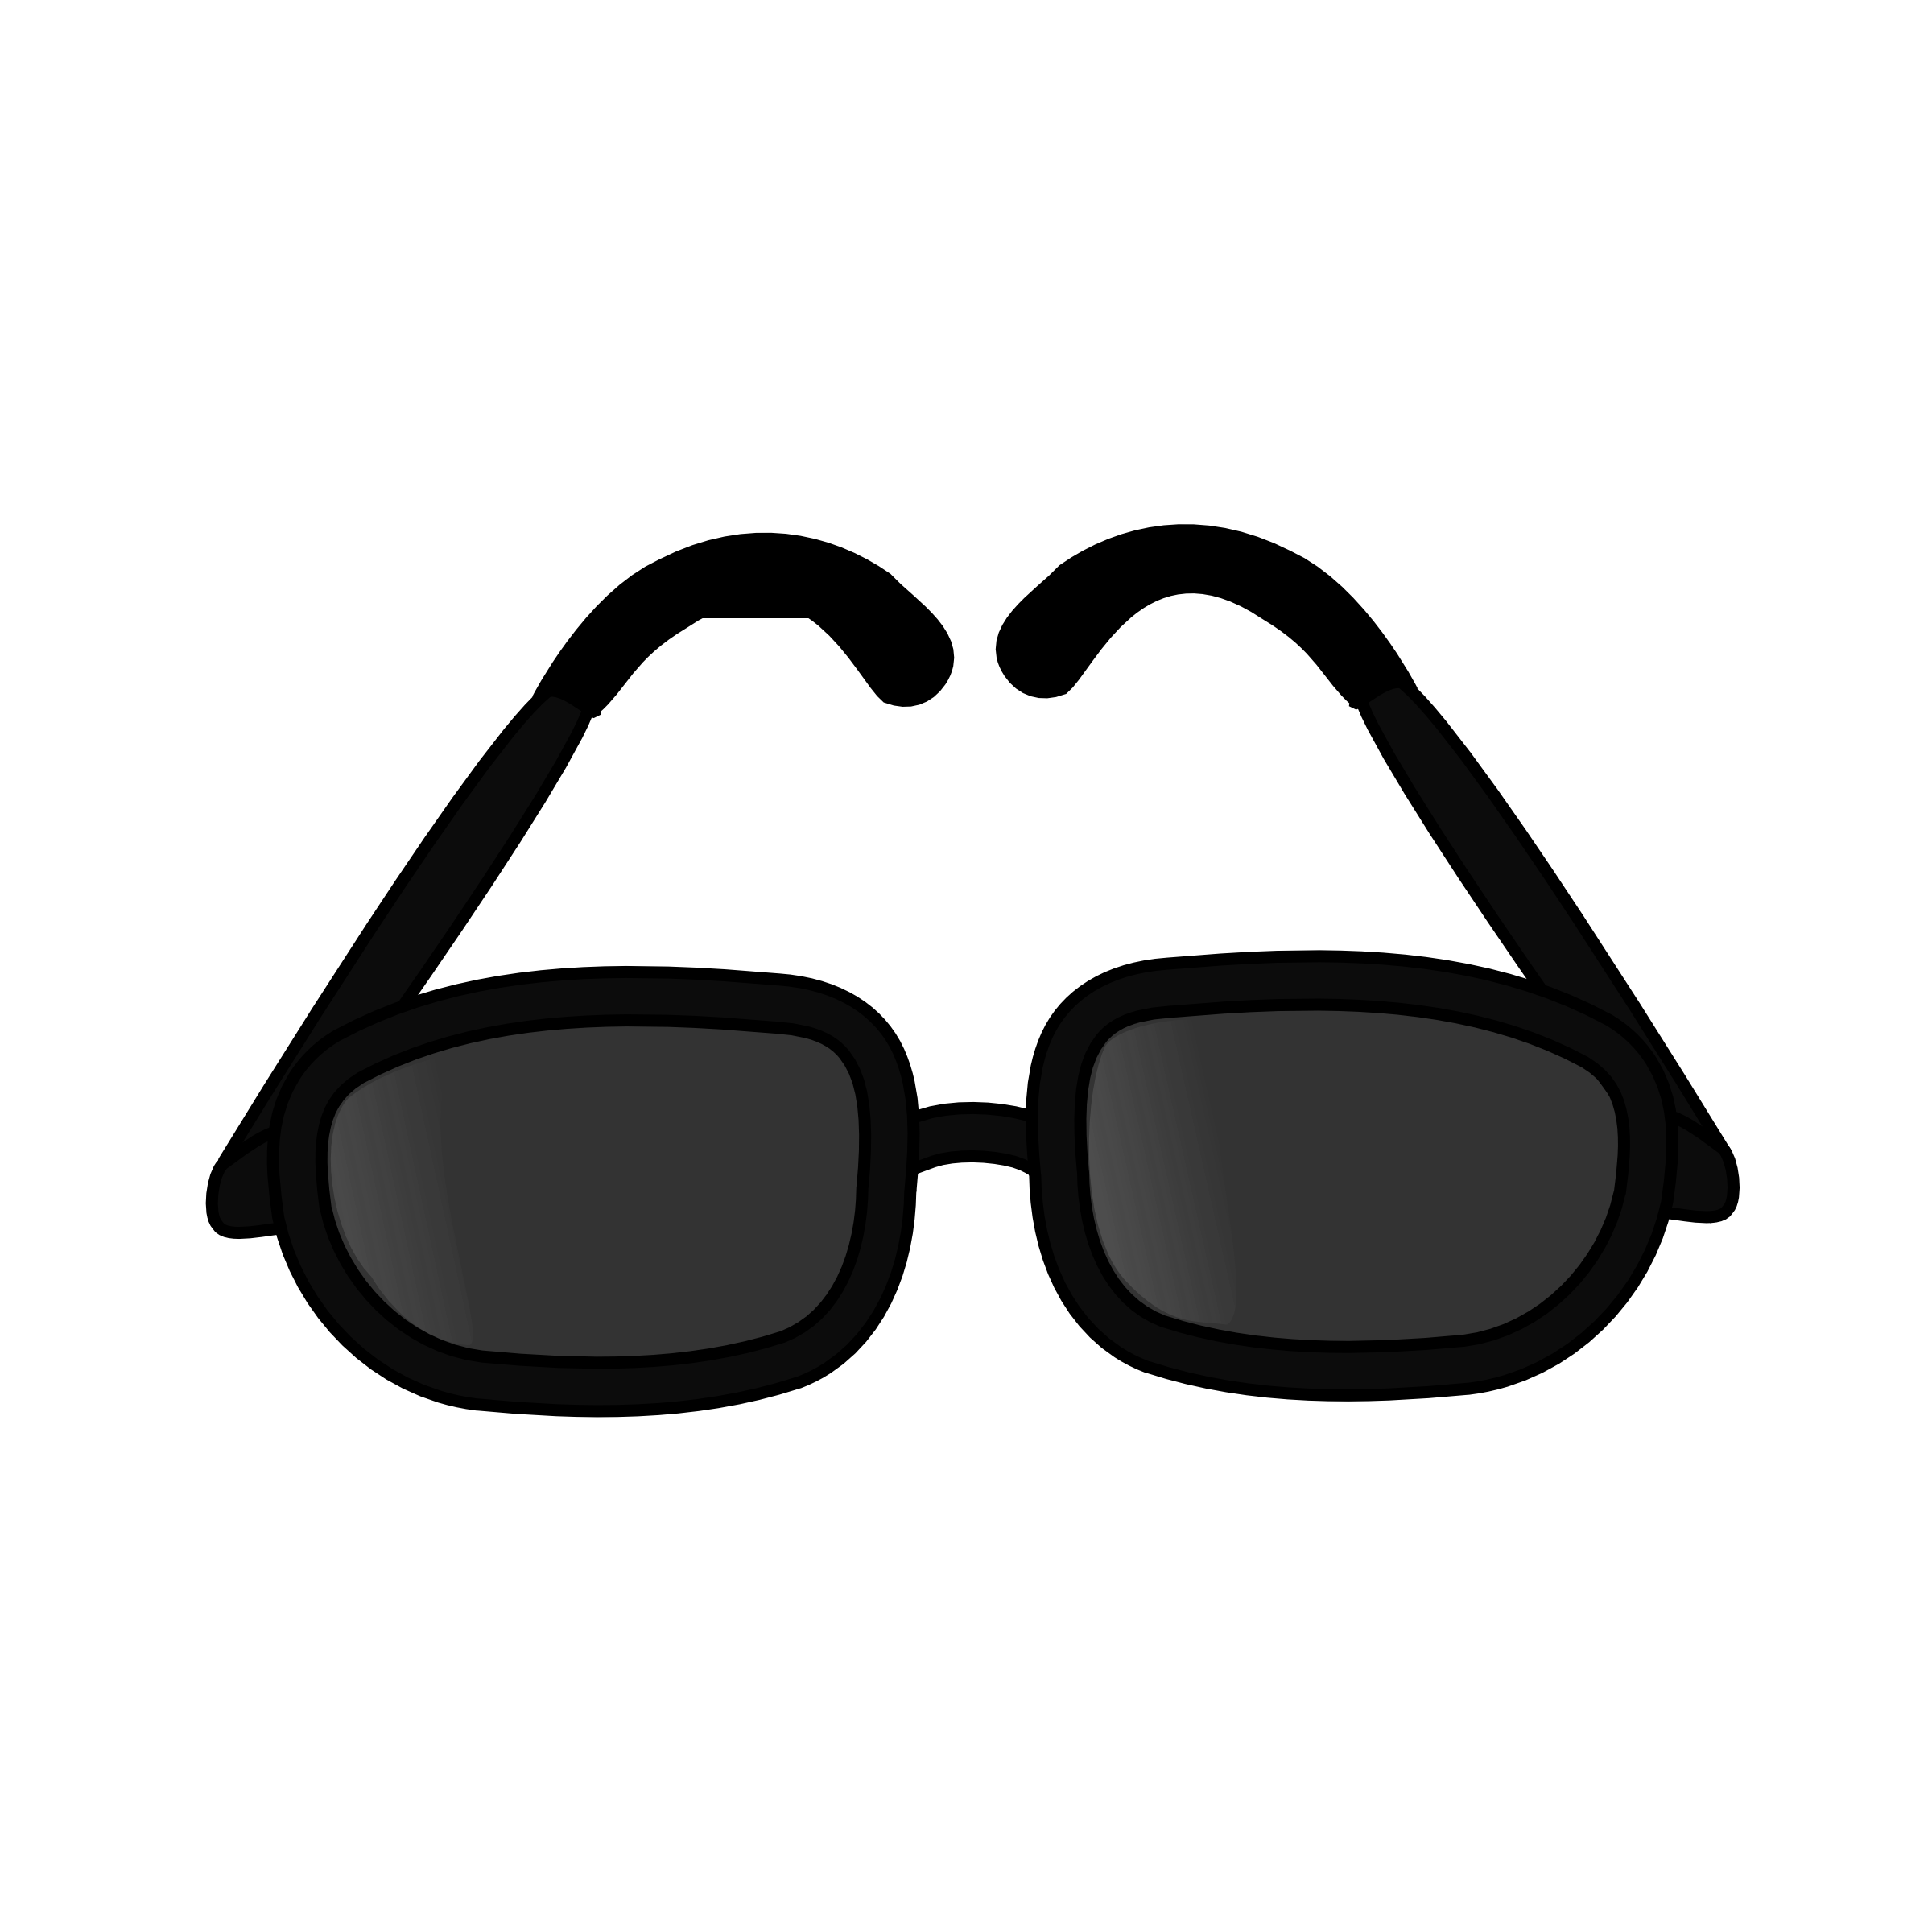 Star glasses clipart image royalty free Eyeglasses Clipart | Clipart Panda - Free Clipart Images image royalty free